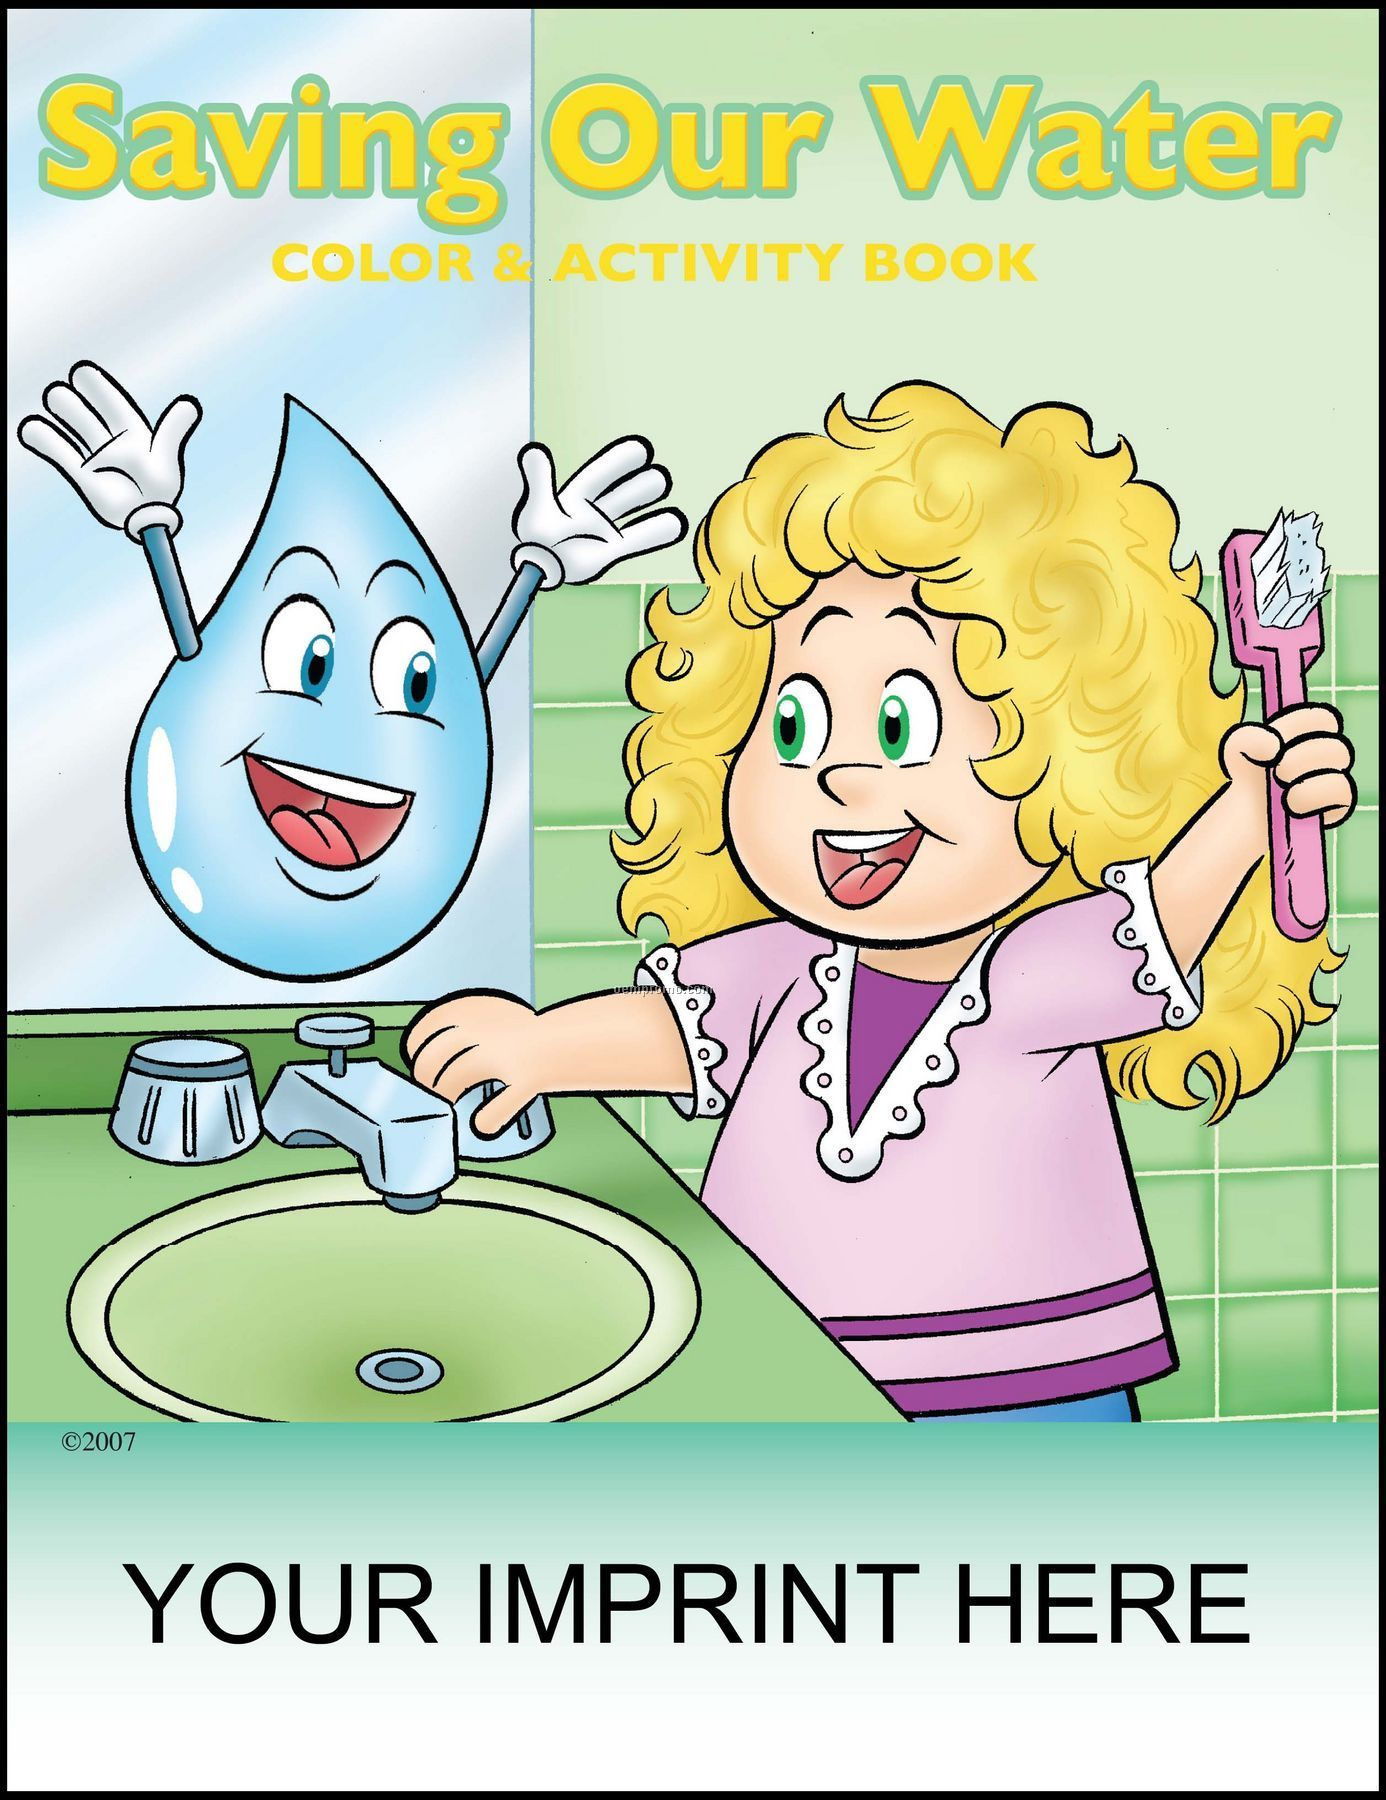 Saving Our Water Coloring & Activity Book